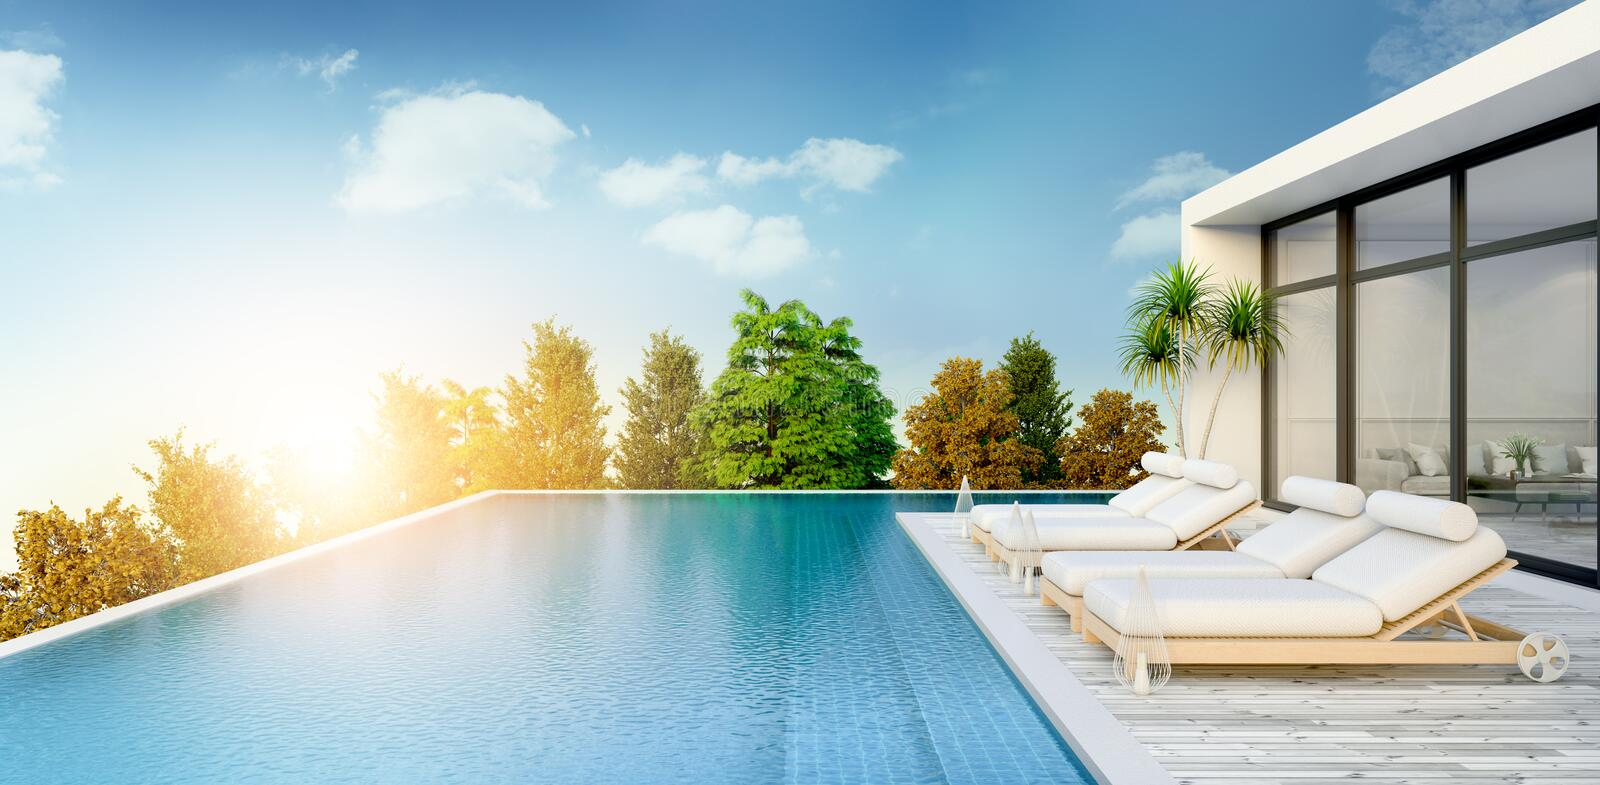 Summer ,beach lounge, sun loungers on Sunbathing deck and private swimming pooland panoramic sea view at luxury villa/3d renderin. G royalty free illustration